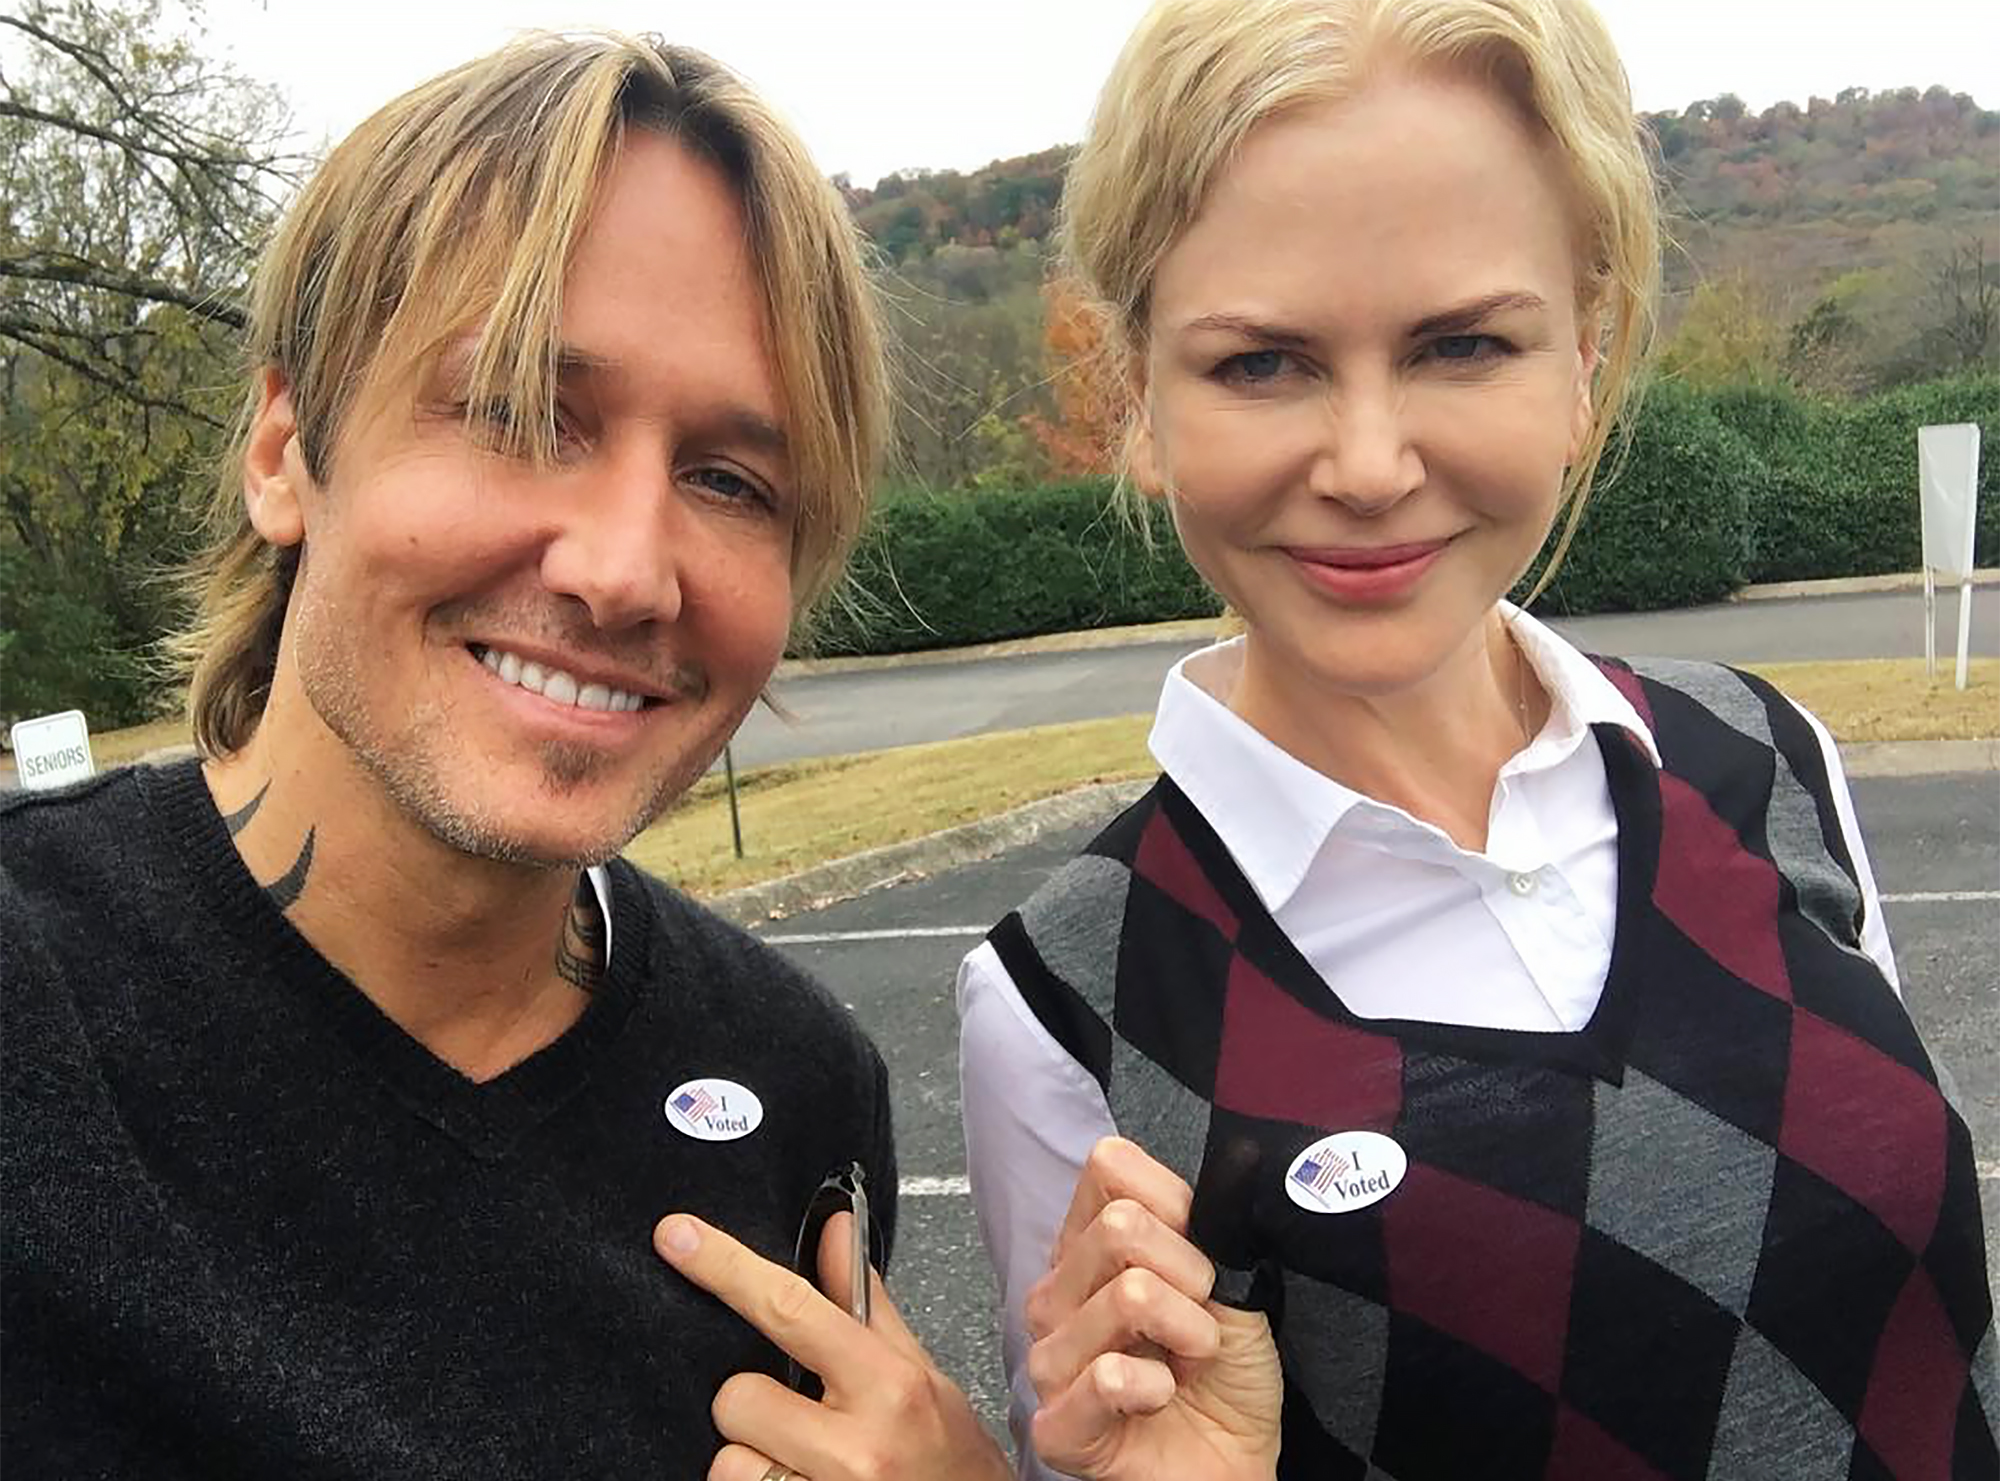 At the Polls, 2016